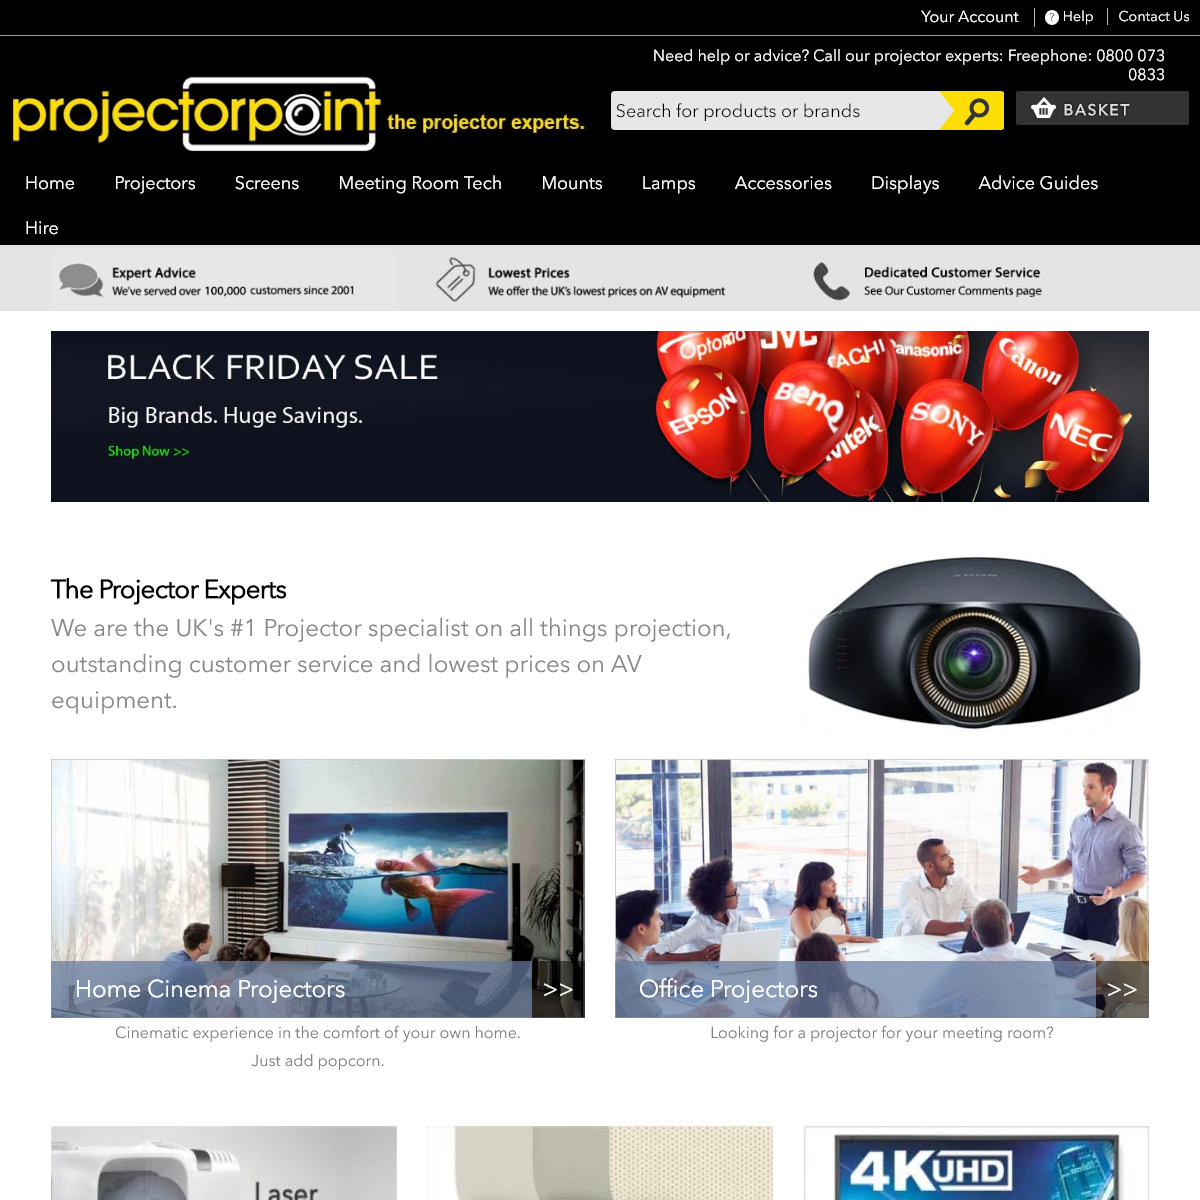 Projectorpoint - The UK`s leading Projector Specialists since 2001